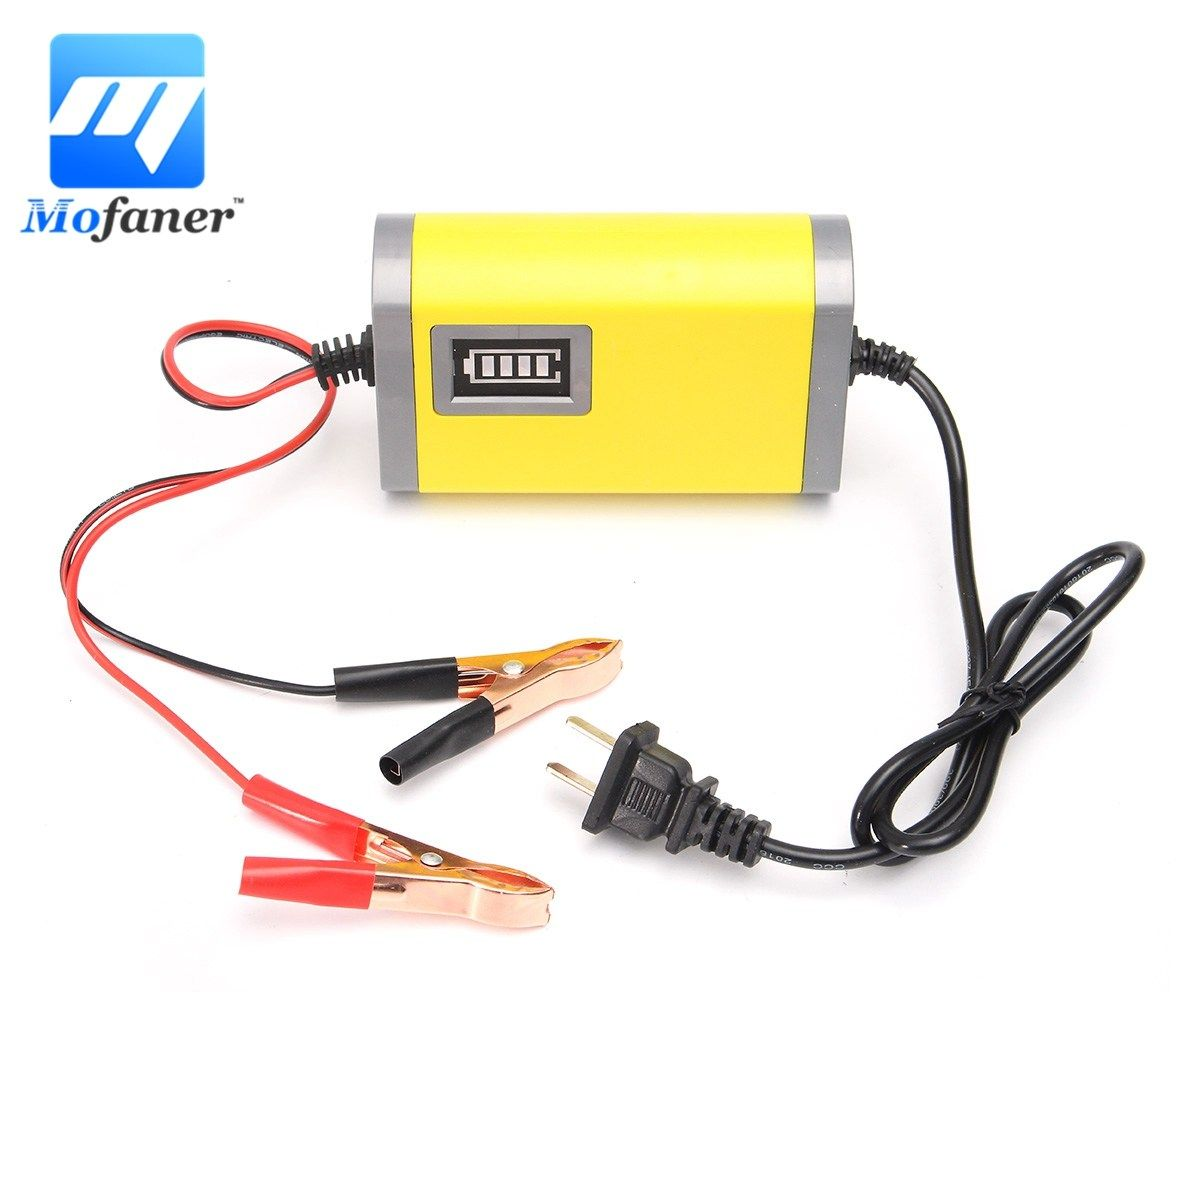 Led 12V 2A Motorcycle Smart Automatic Battery Charger Maintainer AC 220V 50/60Hz Yellow